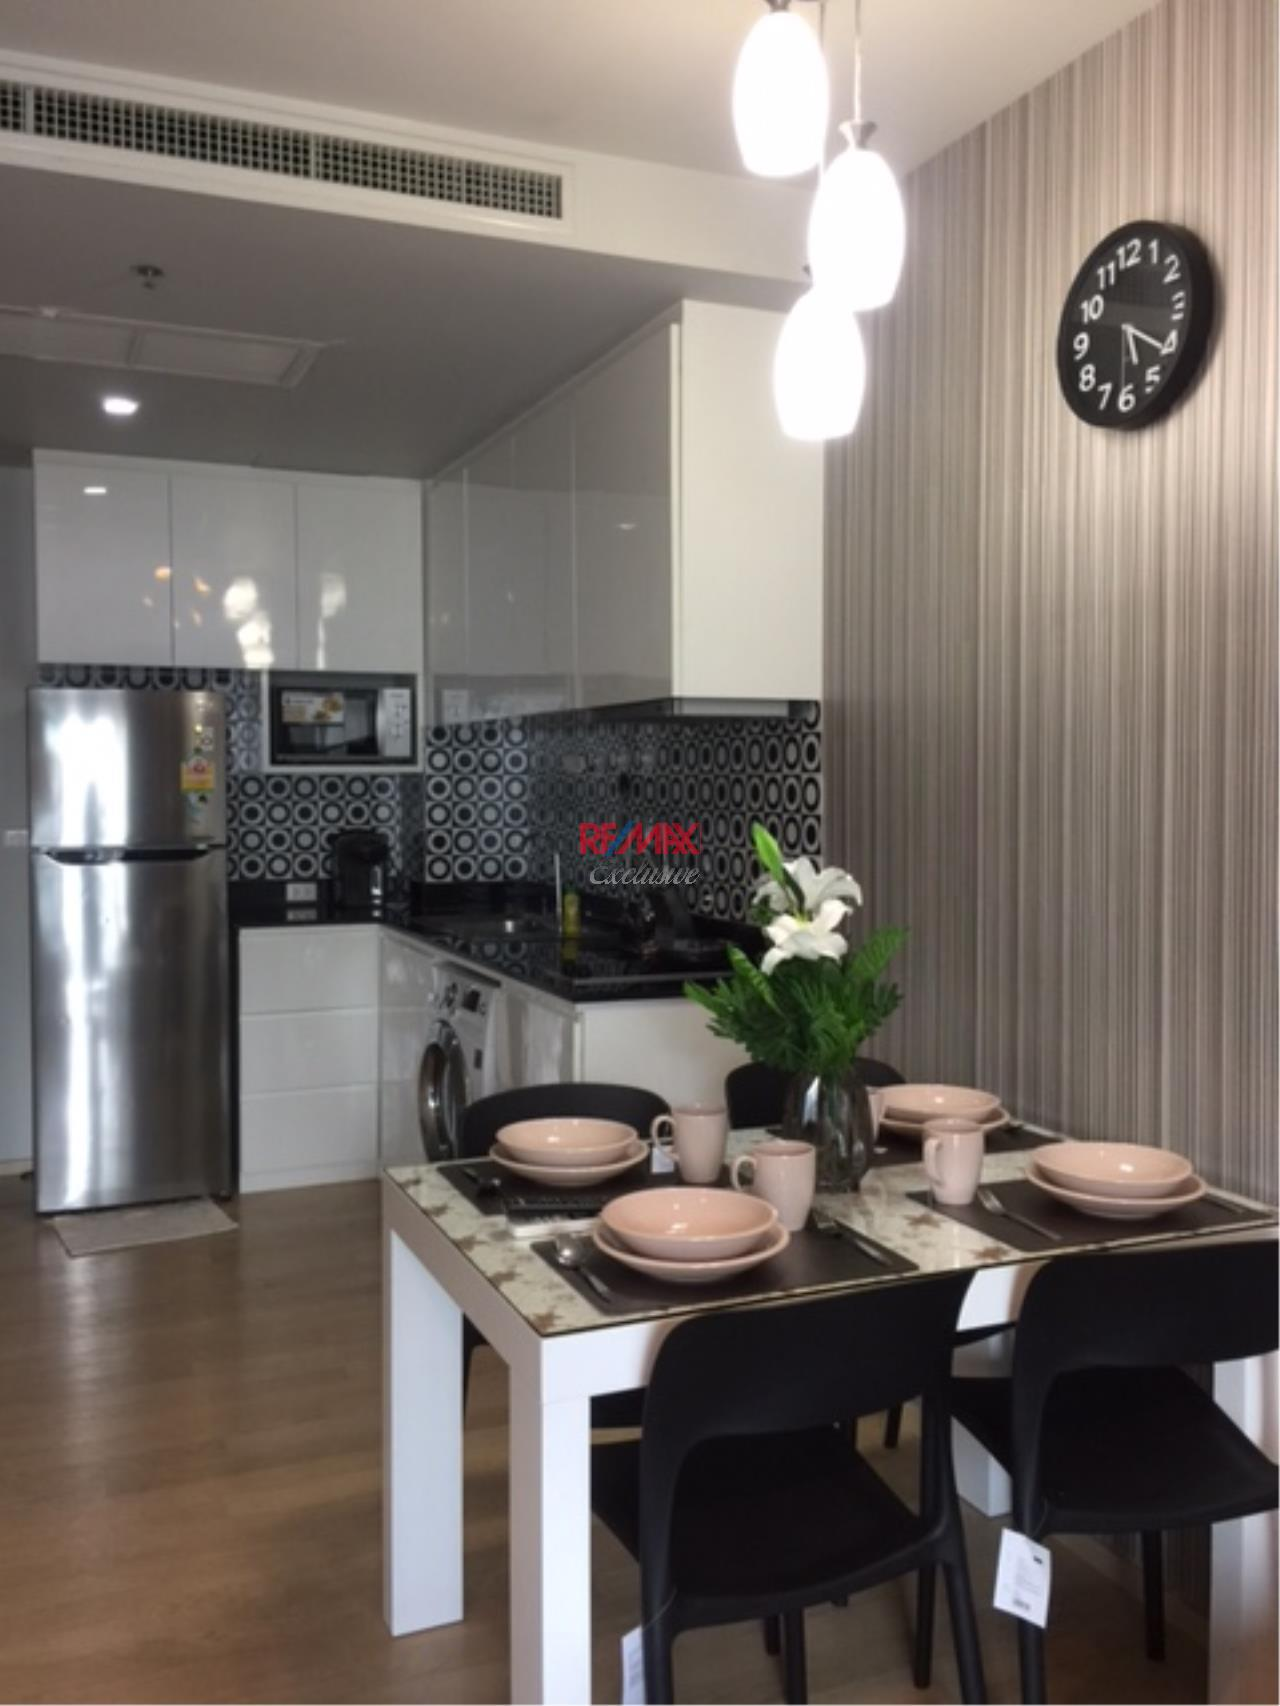 RE/MAX Exclusive Agency's Noble Refine 1 Bedroom, Beautiful and Modern Decoration For Rent 40,000 THB  4